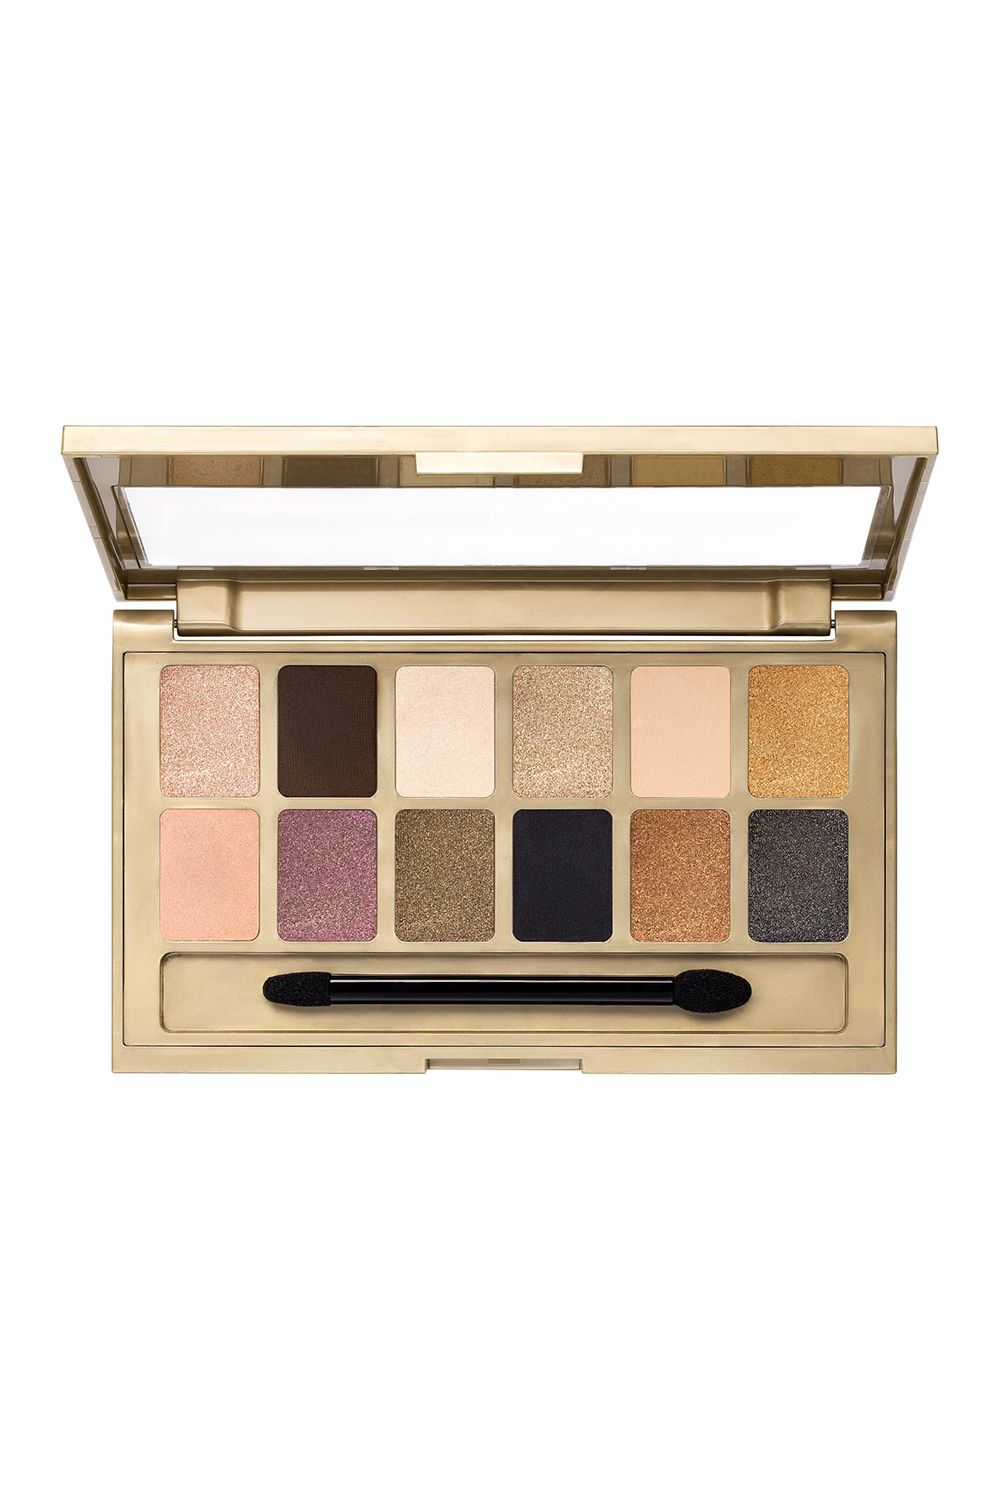 "<p>The name of this palette says it all: Each of these 12 shimmer-packed shadows gleam like a wedge of gold, at one-trillionth of the cost.<br></p><p><i data-redactor-tag=""i"">Maybelline The 24KT Nudes Eyeshadow Palette, $8.99</i></p><p><strong data-redactor-tag=""strong"">BUY IT: <a href=""https://www.target.com/p/maybelline-174-the24kt-nudes-eye-shadow-palette-120-0-34-oz/-/A-51168535"">target.com</a>.  </strong></p>"